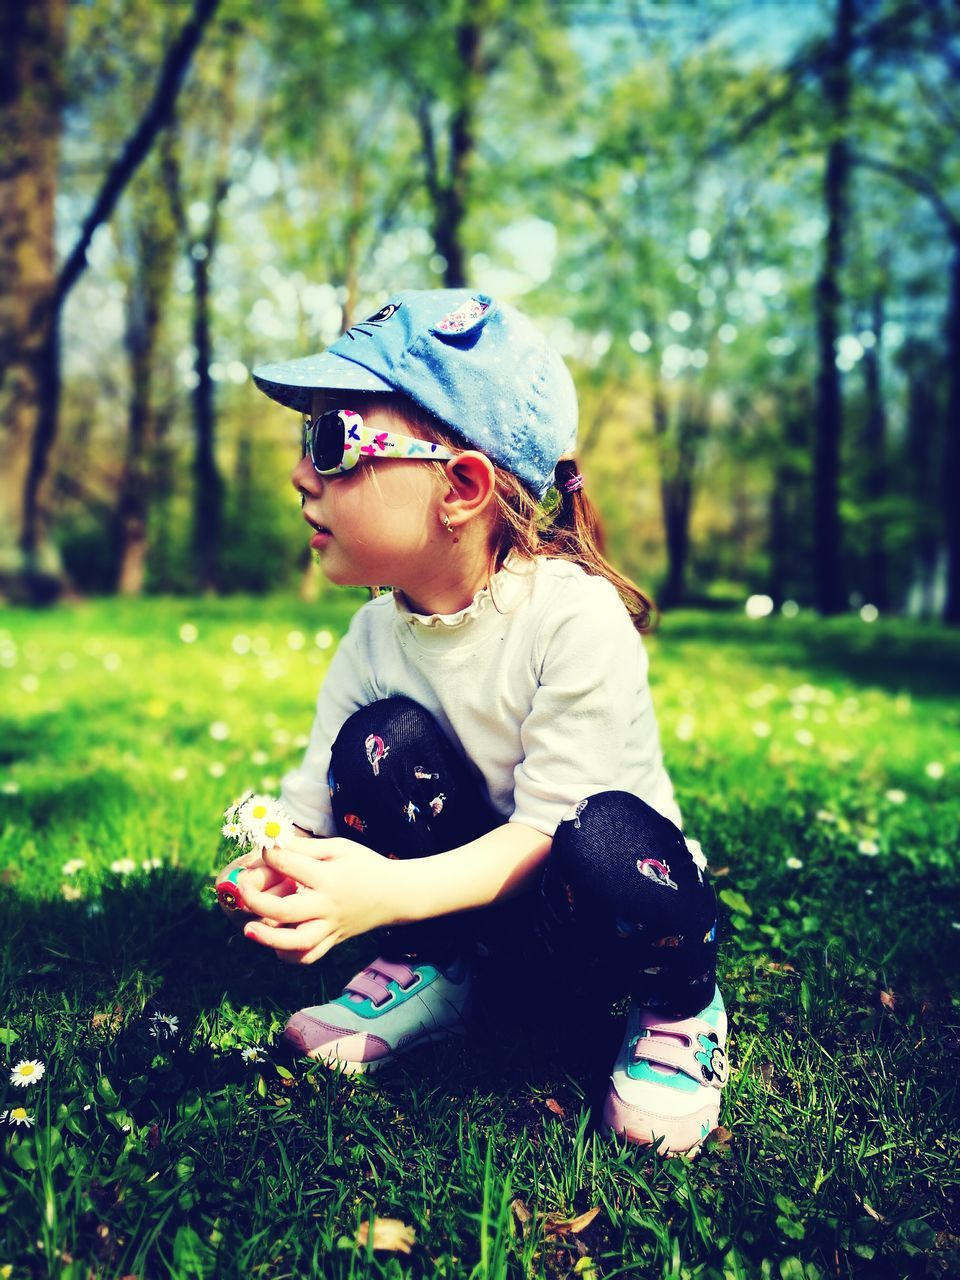 grass, childhood, one person, real people, nature, leisure activity, outdoors, cute, elementary age, tree, day, park - man made space, holding, sitting, lifestyles, girls, one animal, boys, playing, forest, animal themes, happiness, mammal, people